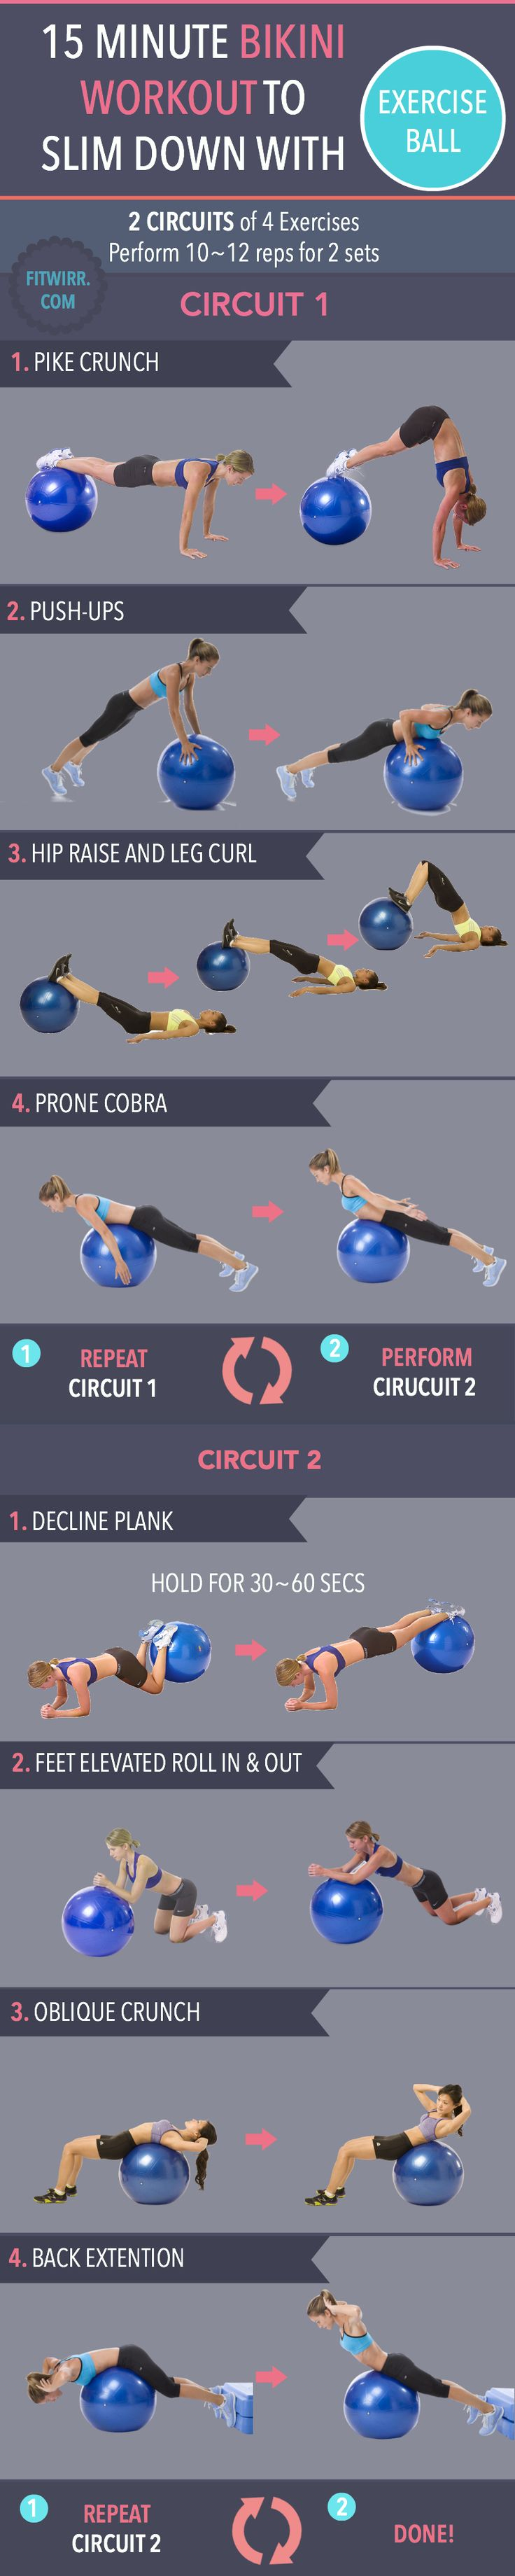 15 minute exercise ball workout to slim down for Summer